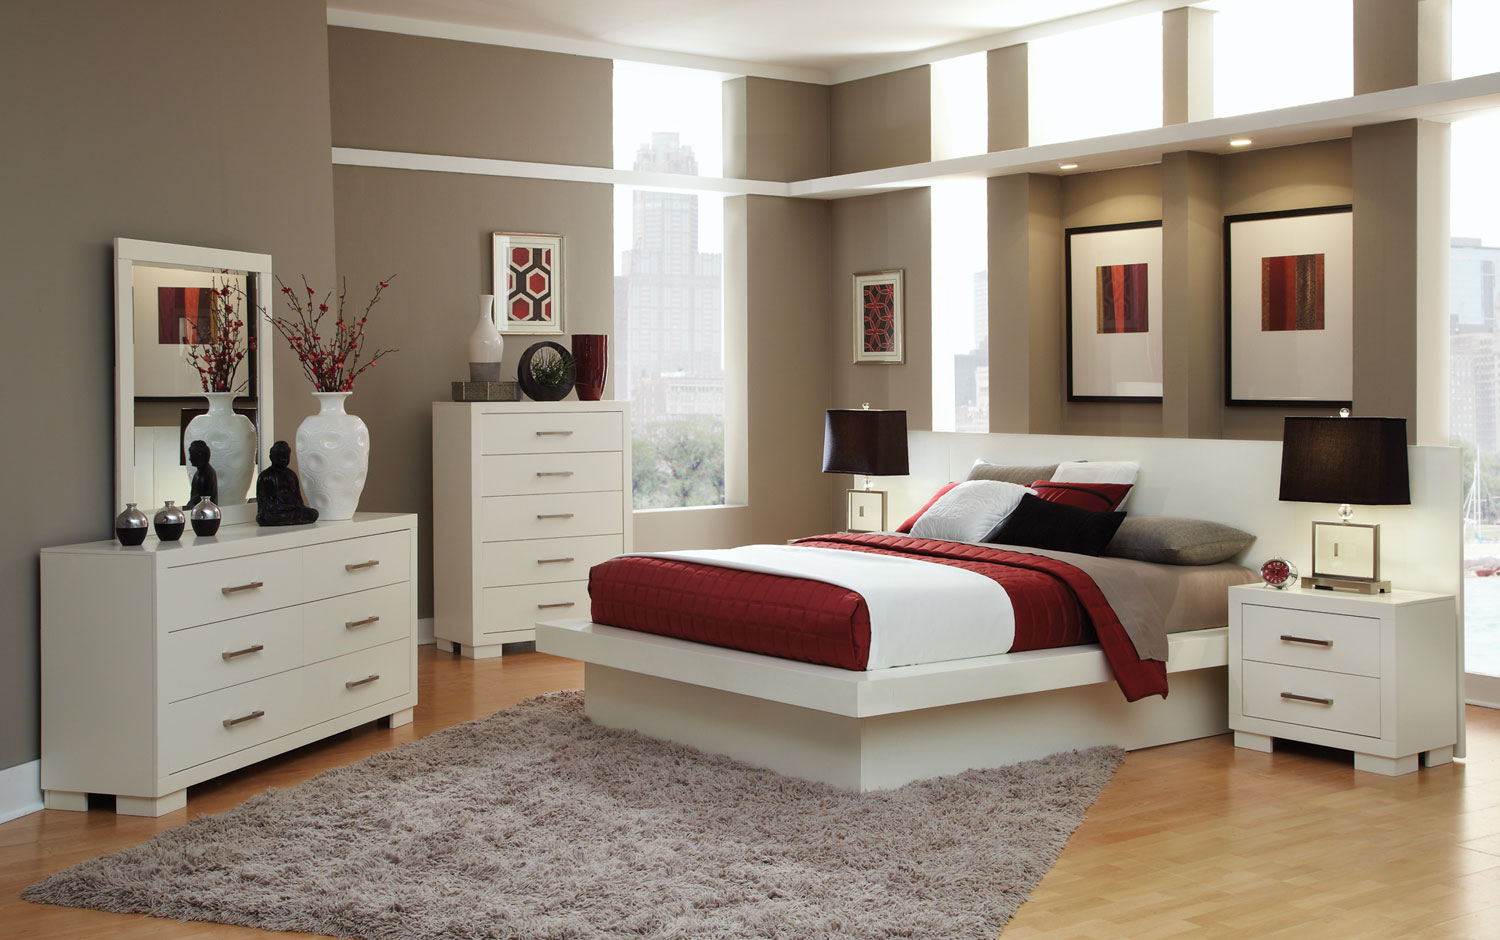 Coaster Jessica Bedroom Set - White 202990-Bed-Set at Homelement.com